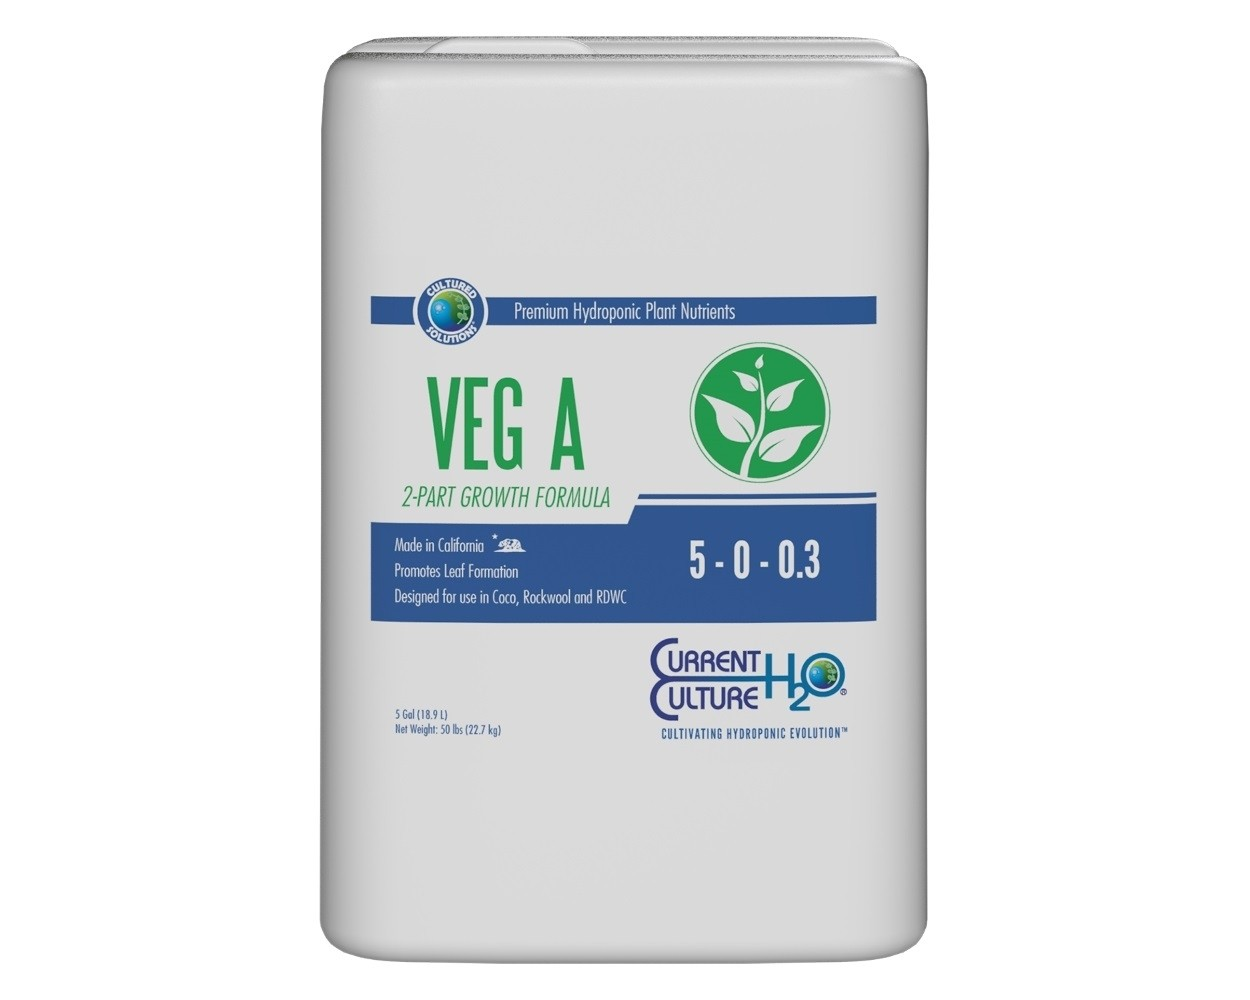 CURRENT CULTURE CULTURED SOLUTIONS VEG A 5 GALLON